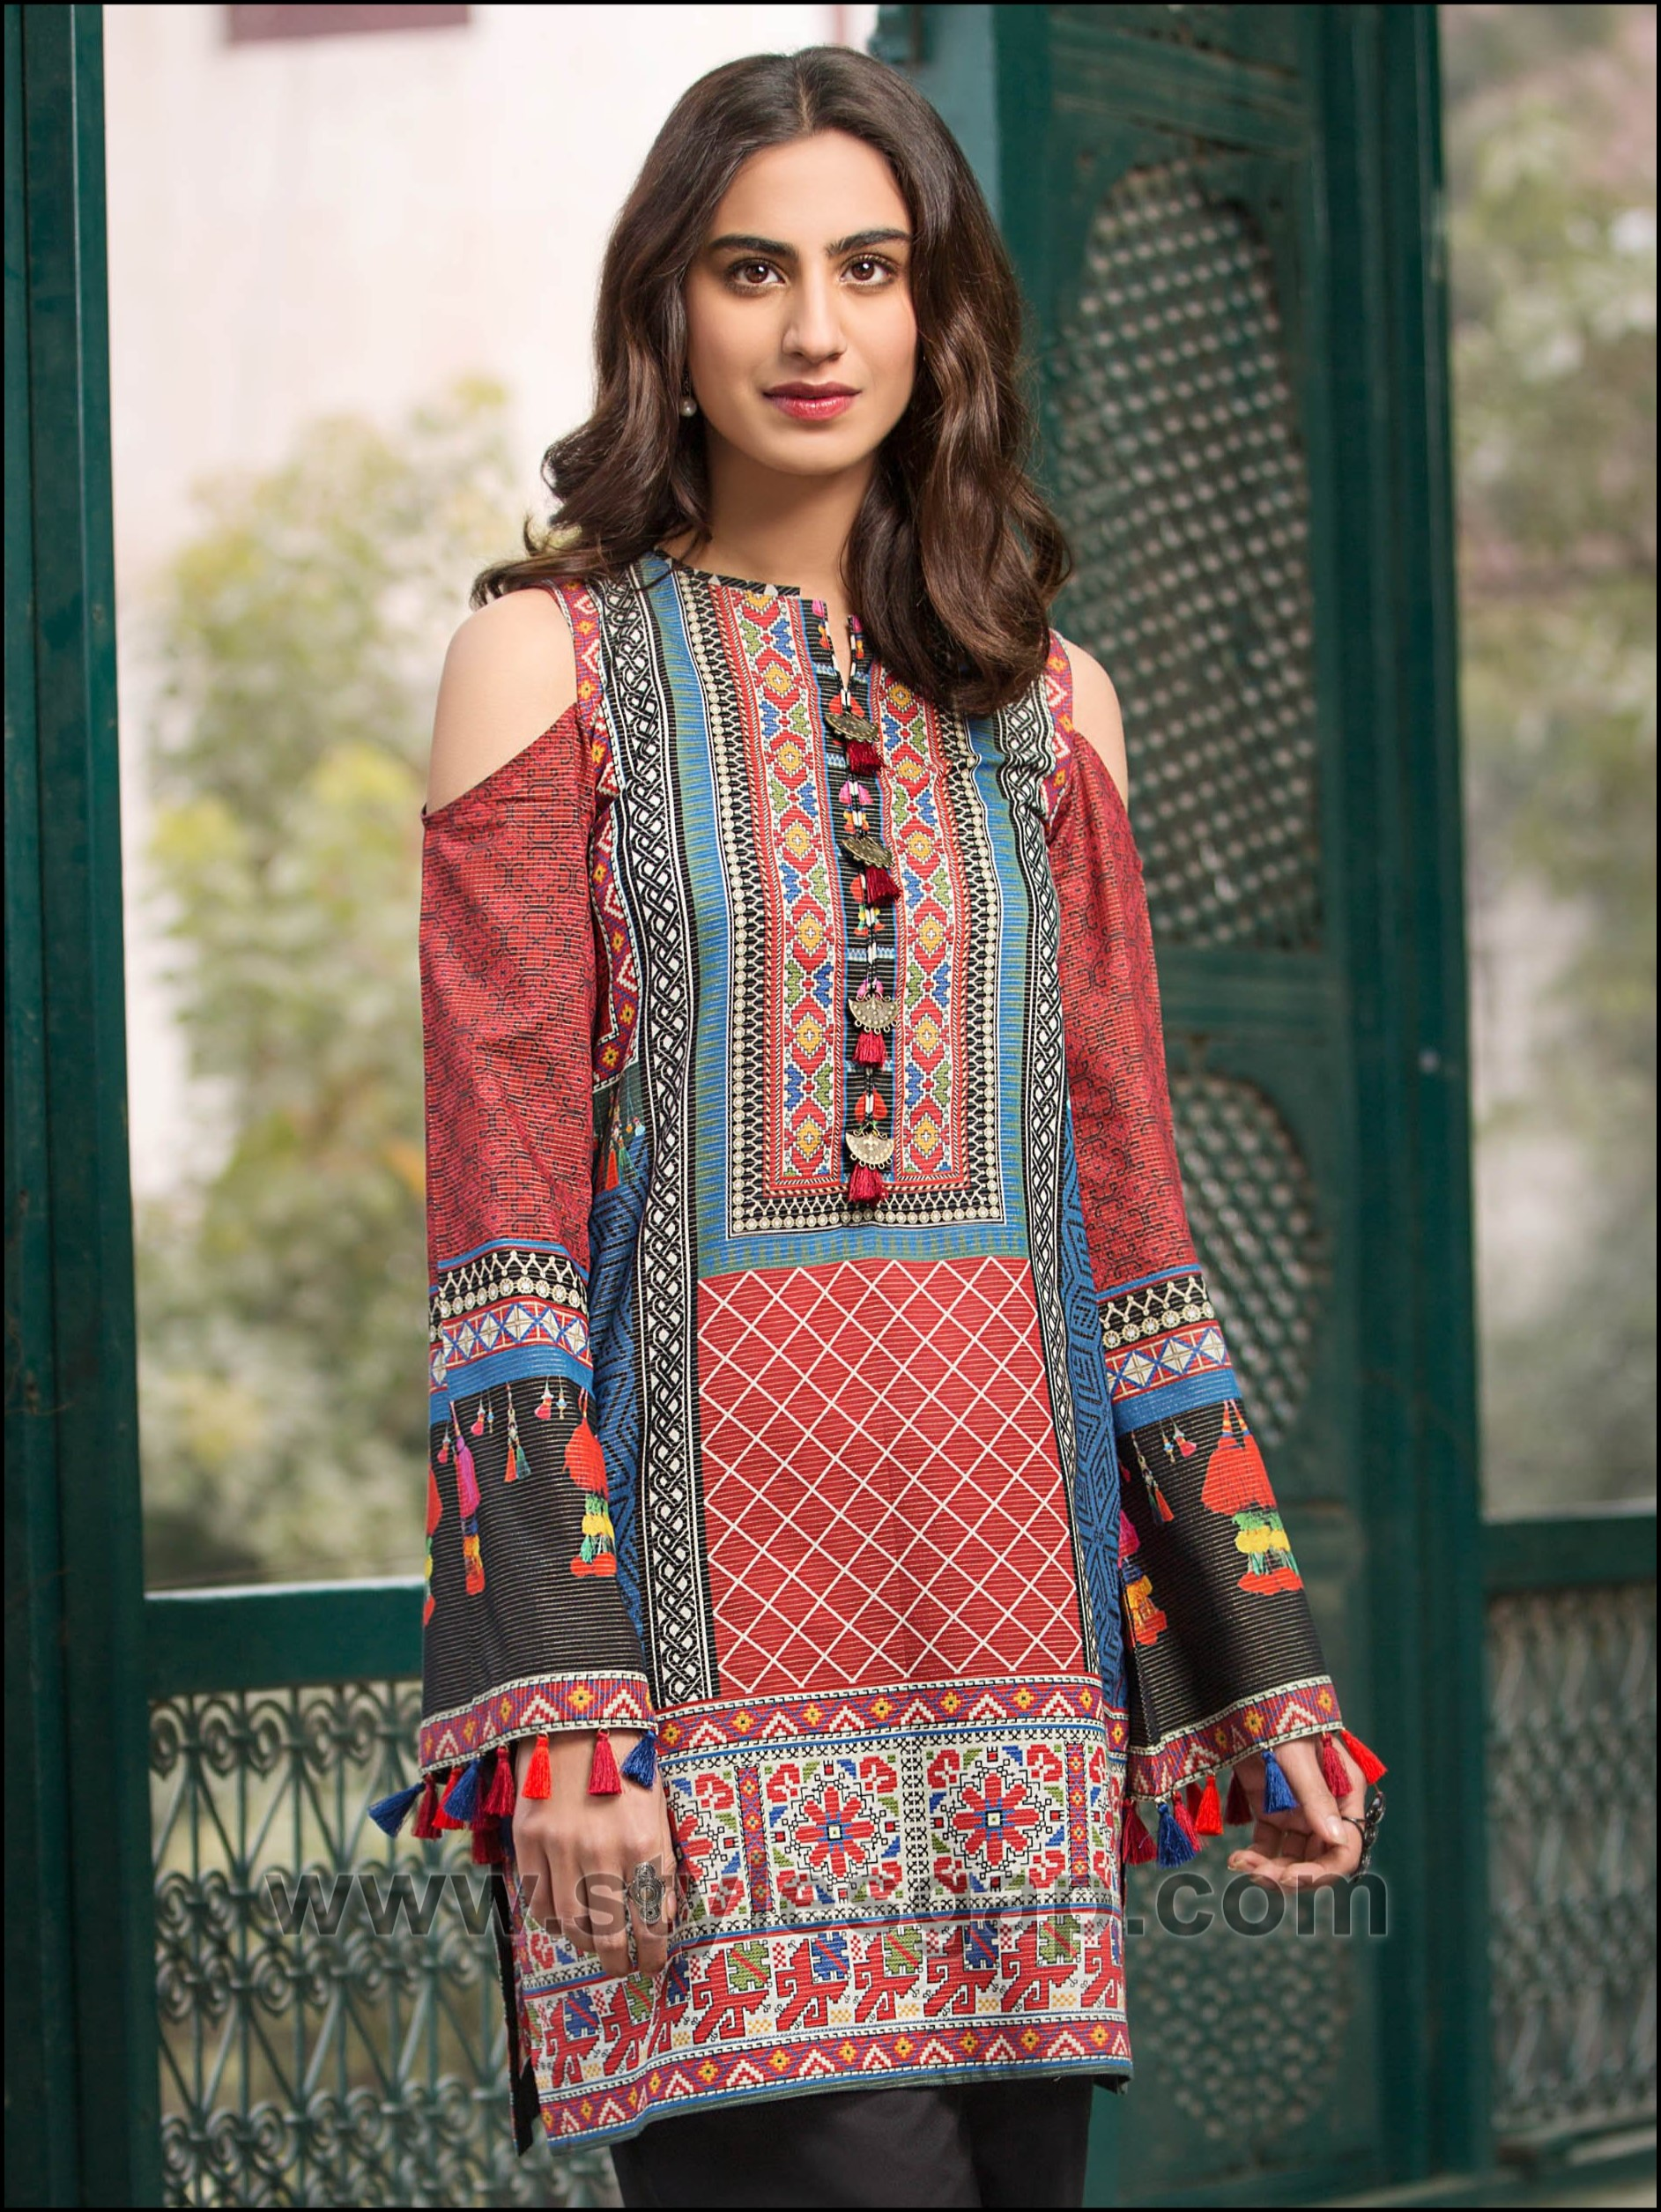 9b760b52bb6e Check out the amazing chic designs of latest summer lawn kurta trend posted  for you below!